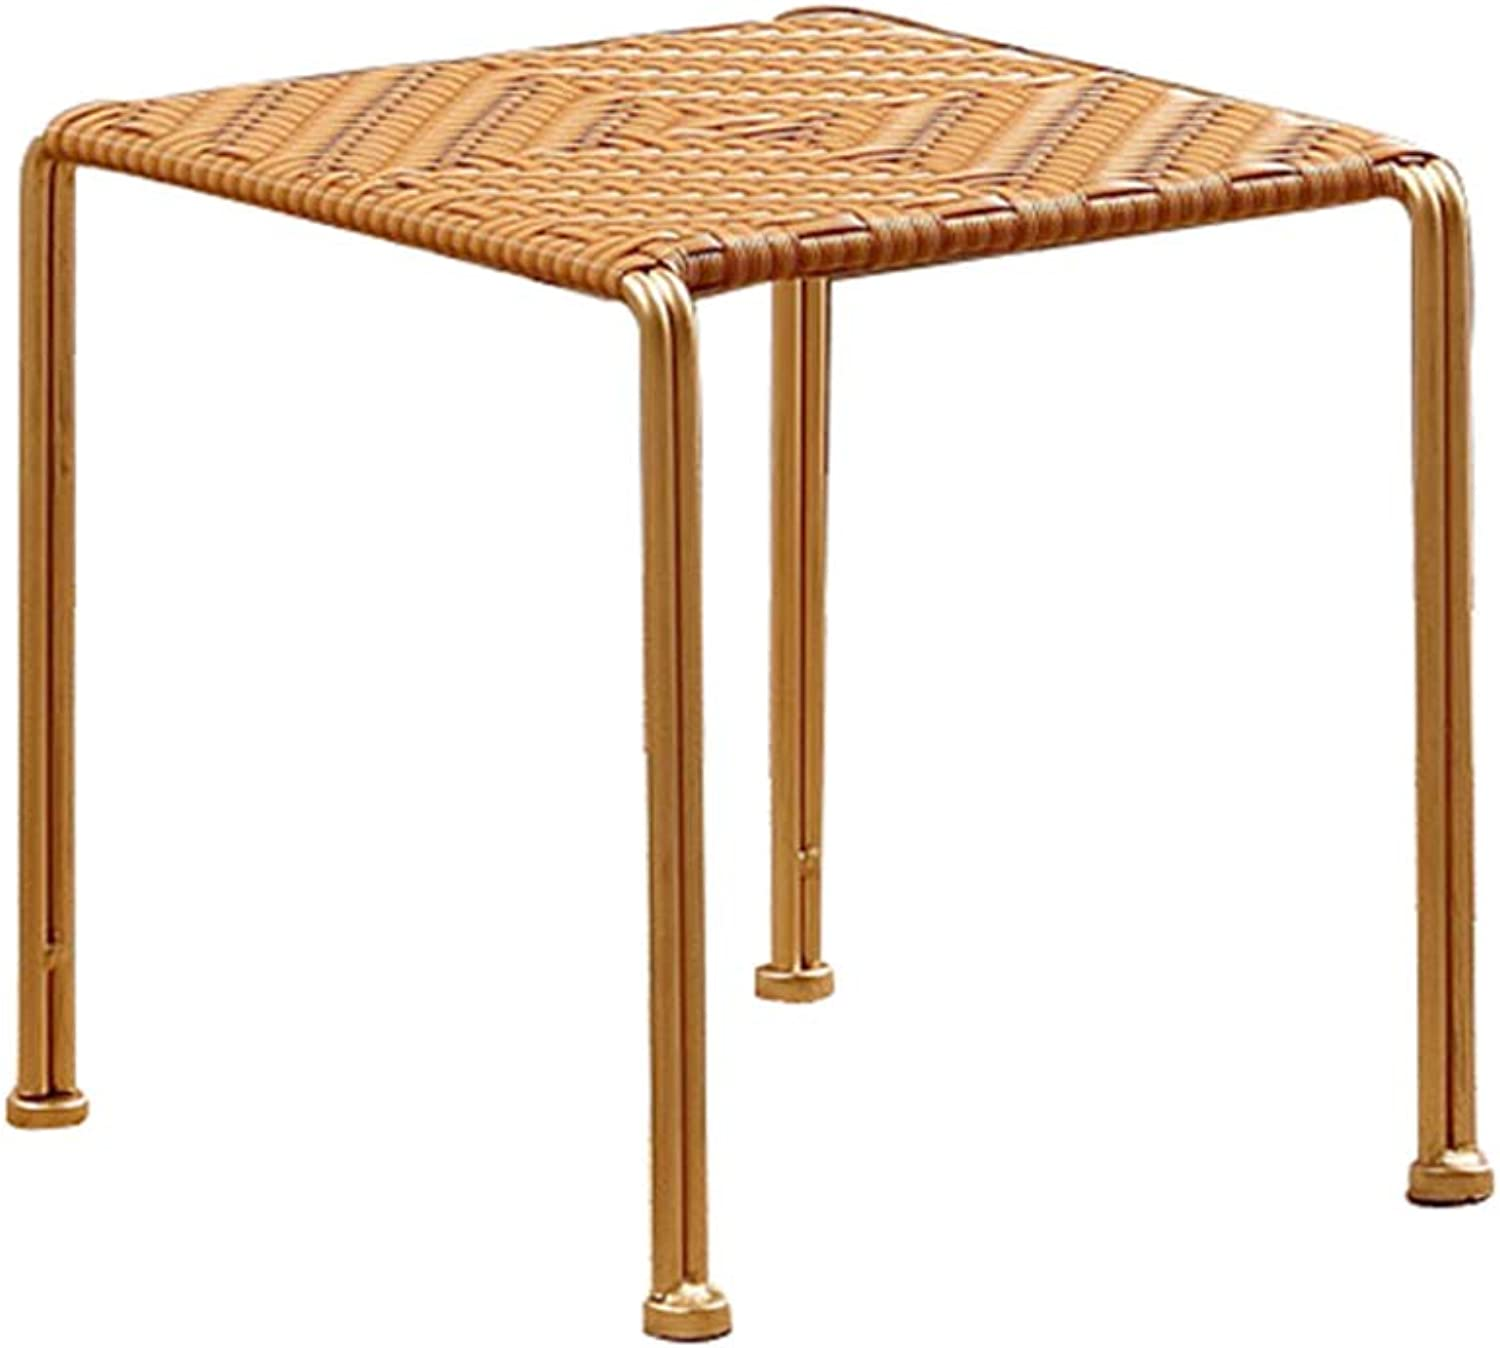 AIDELAI Bar Stool Chair- Rattan Stool Side Stool Rattan Chair Dining Chair Adult Bench Coffee Table Stool Stool Stool Plastic Stool Saddle Seat (color   B, Size   28  30  25CM)